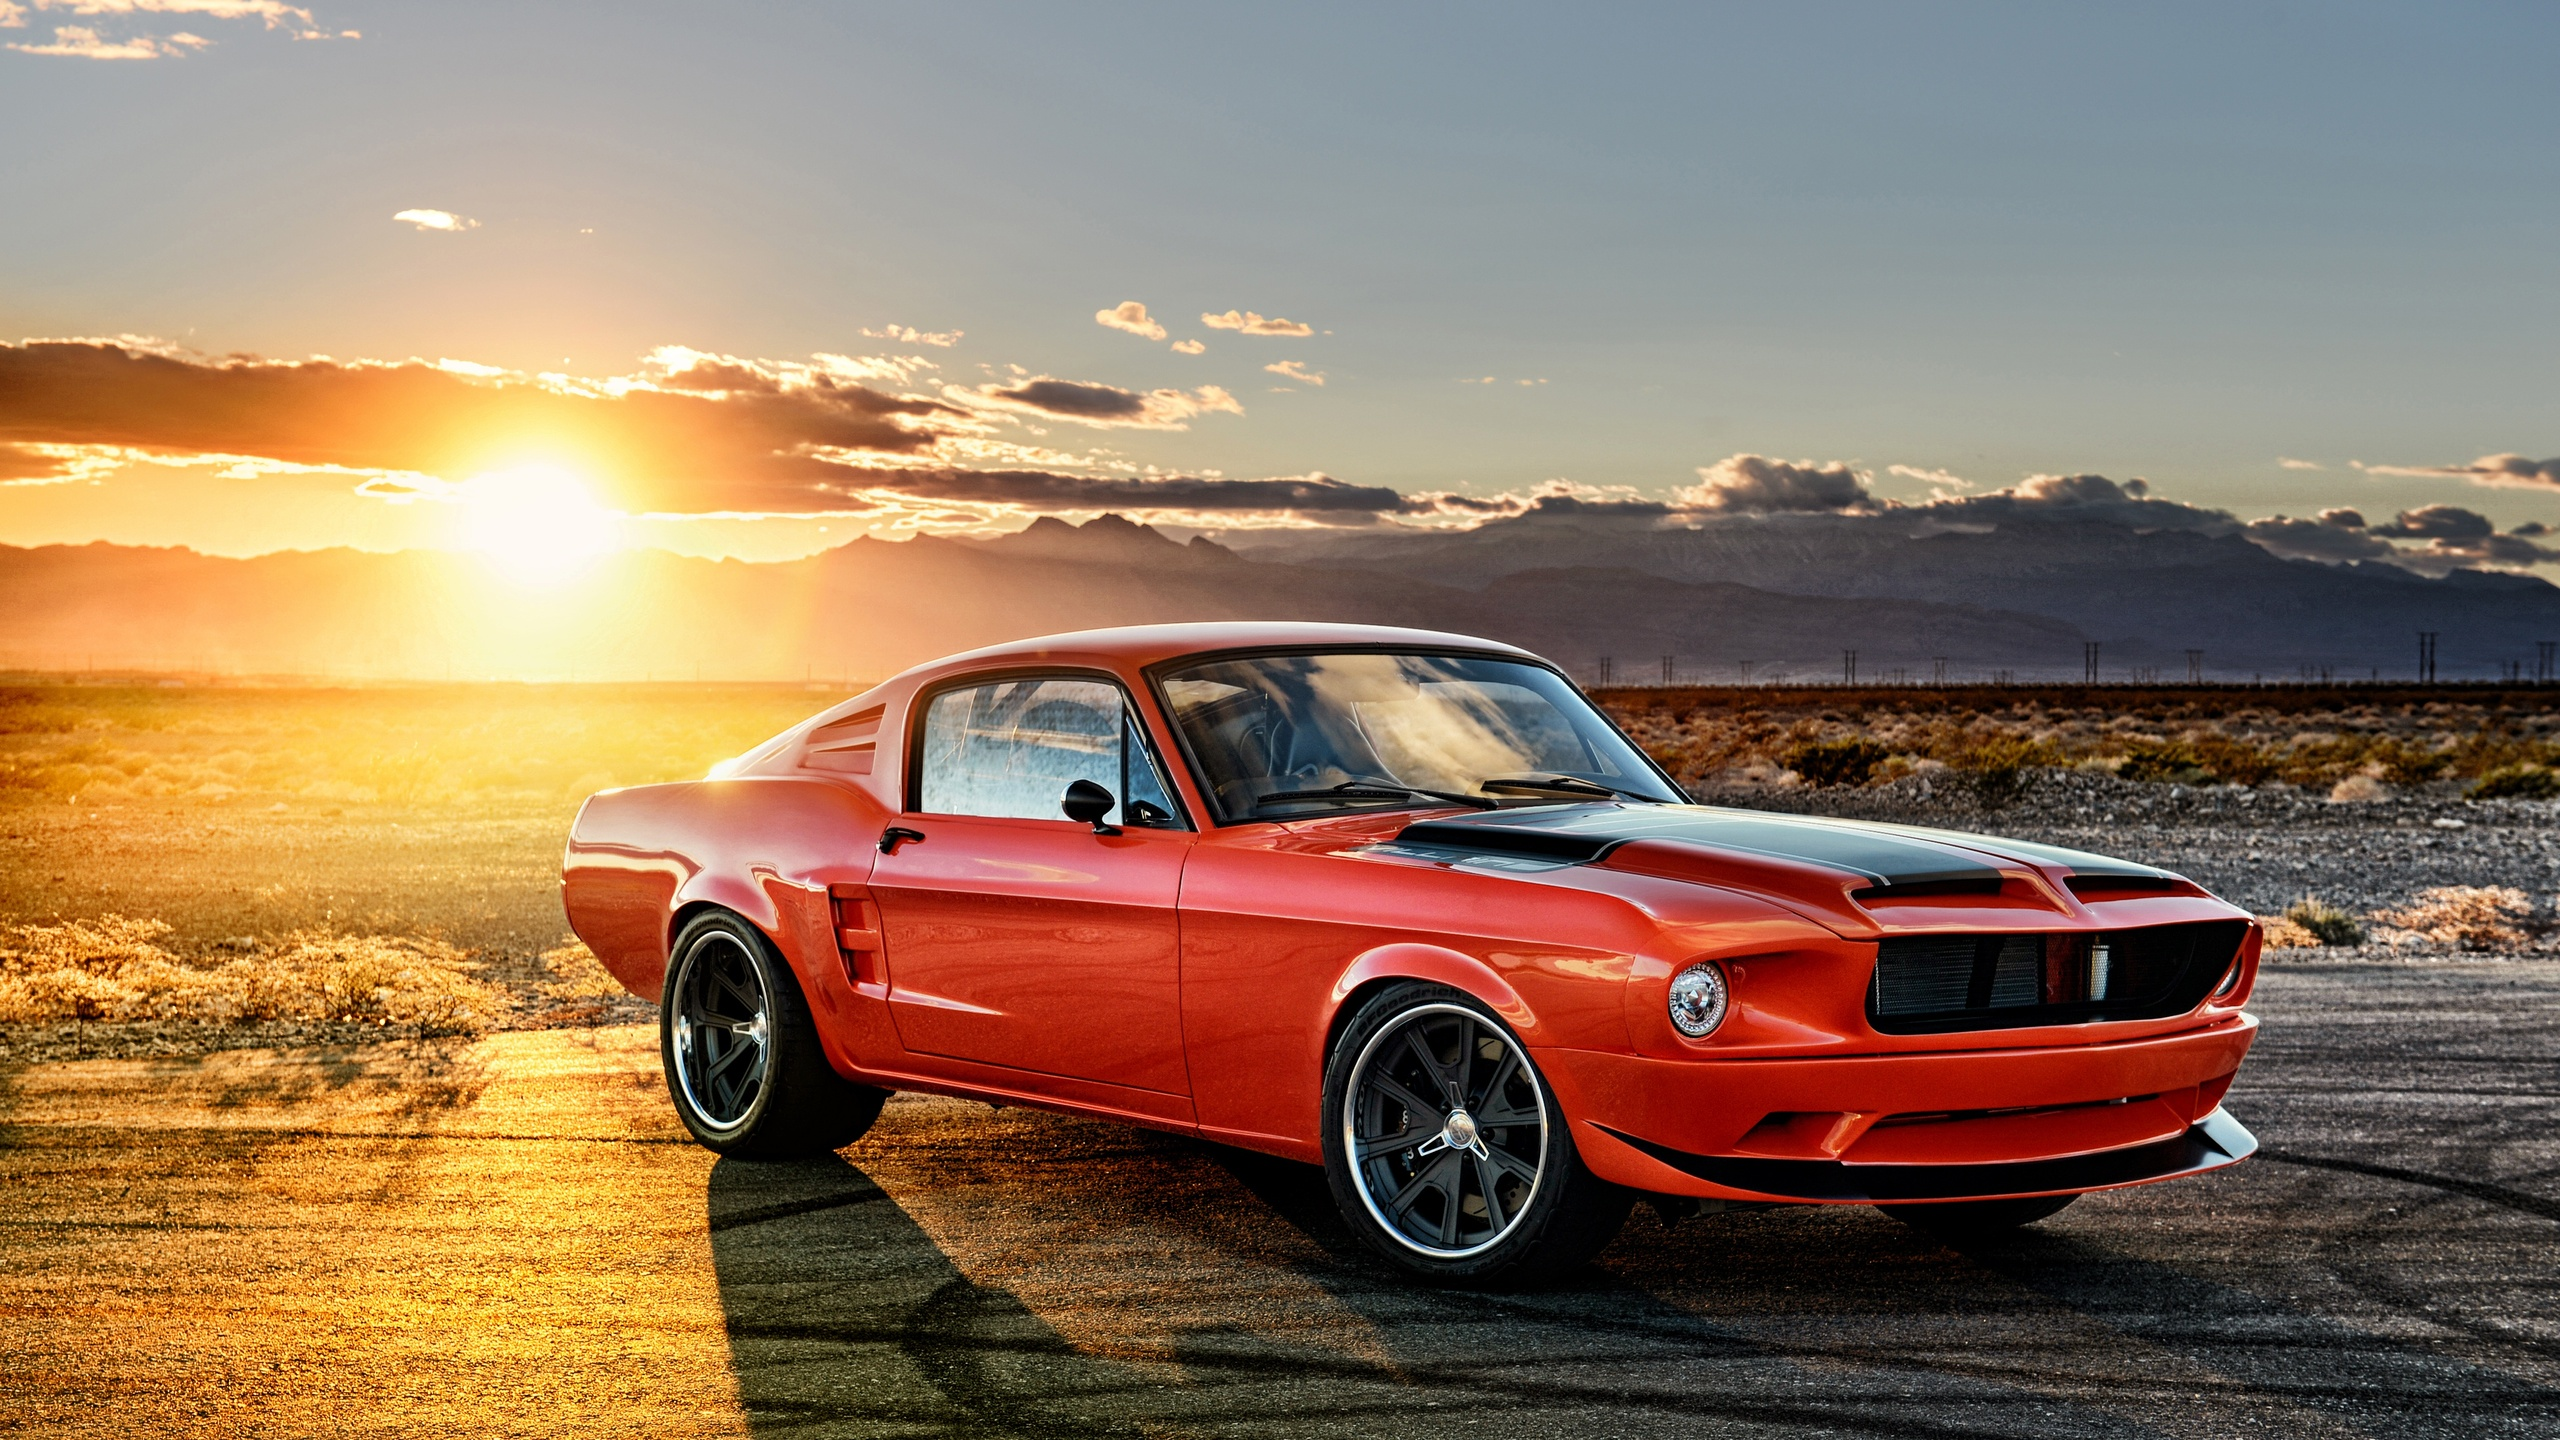 2560x1440 Ford Mustang Muscle Car 4k 1440p Resolution Hd 4k Wallpapers Images Backgrounds Photos And Pictures